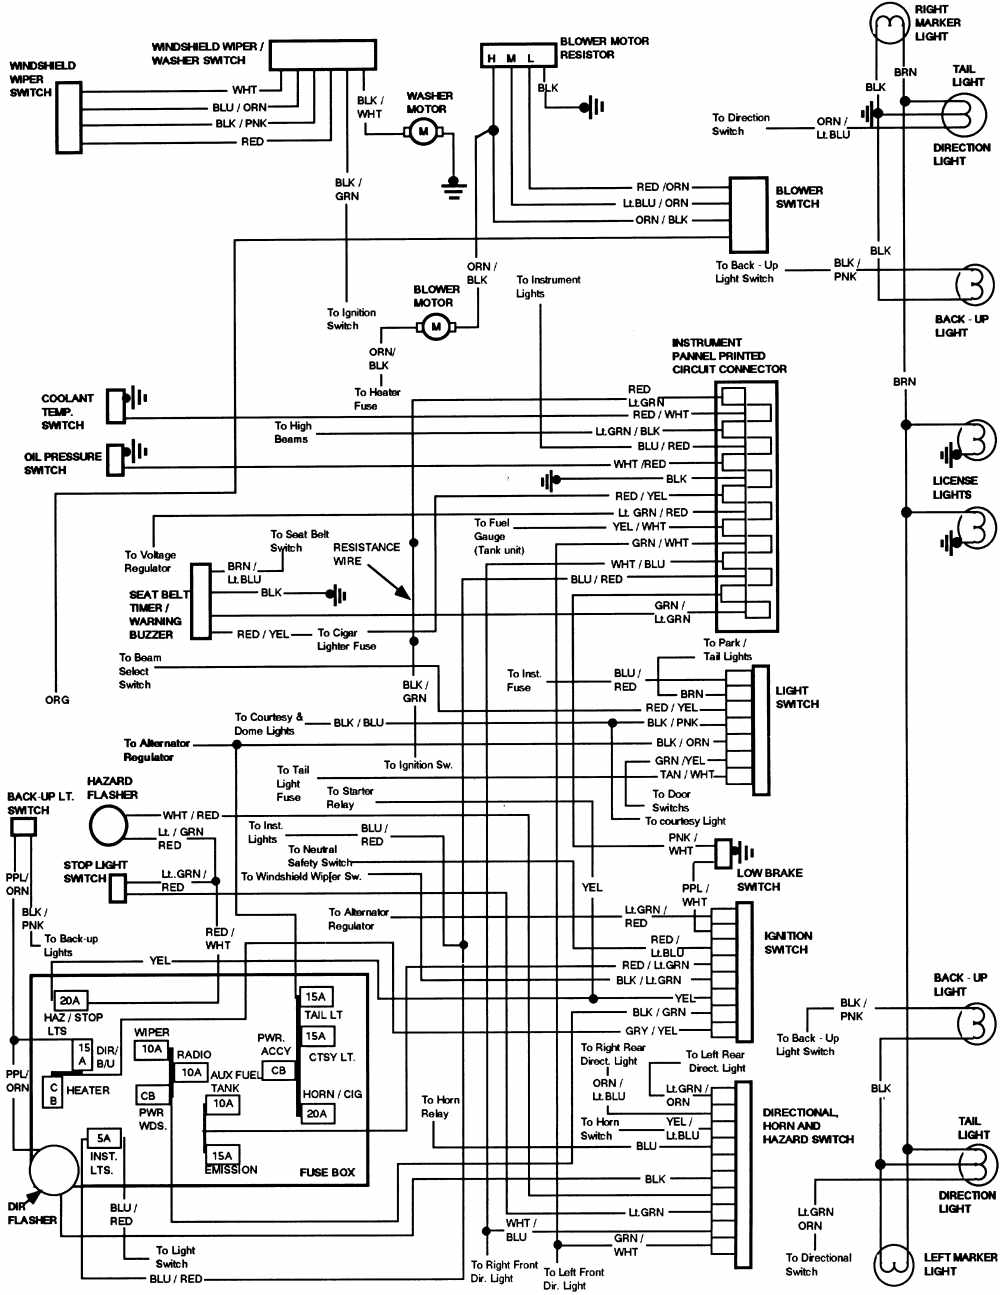 Ford    Bronco 1984 Instrument Panel Wiring    Diagram      All